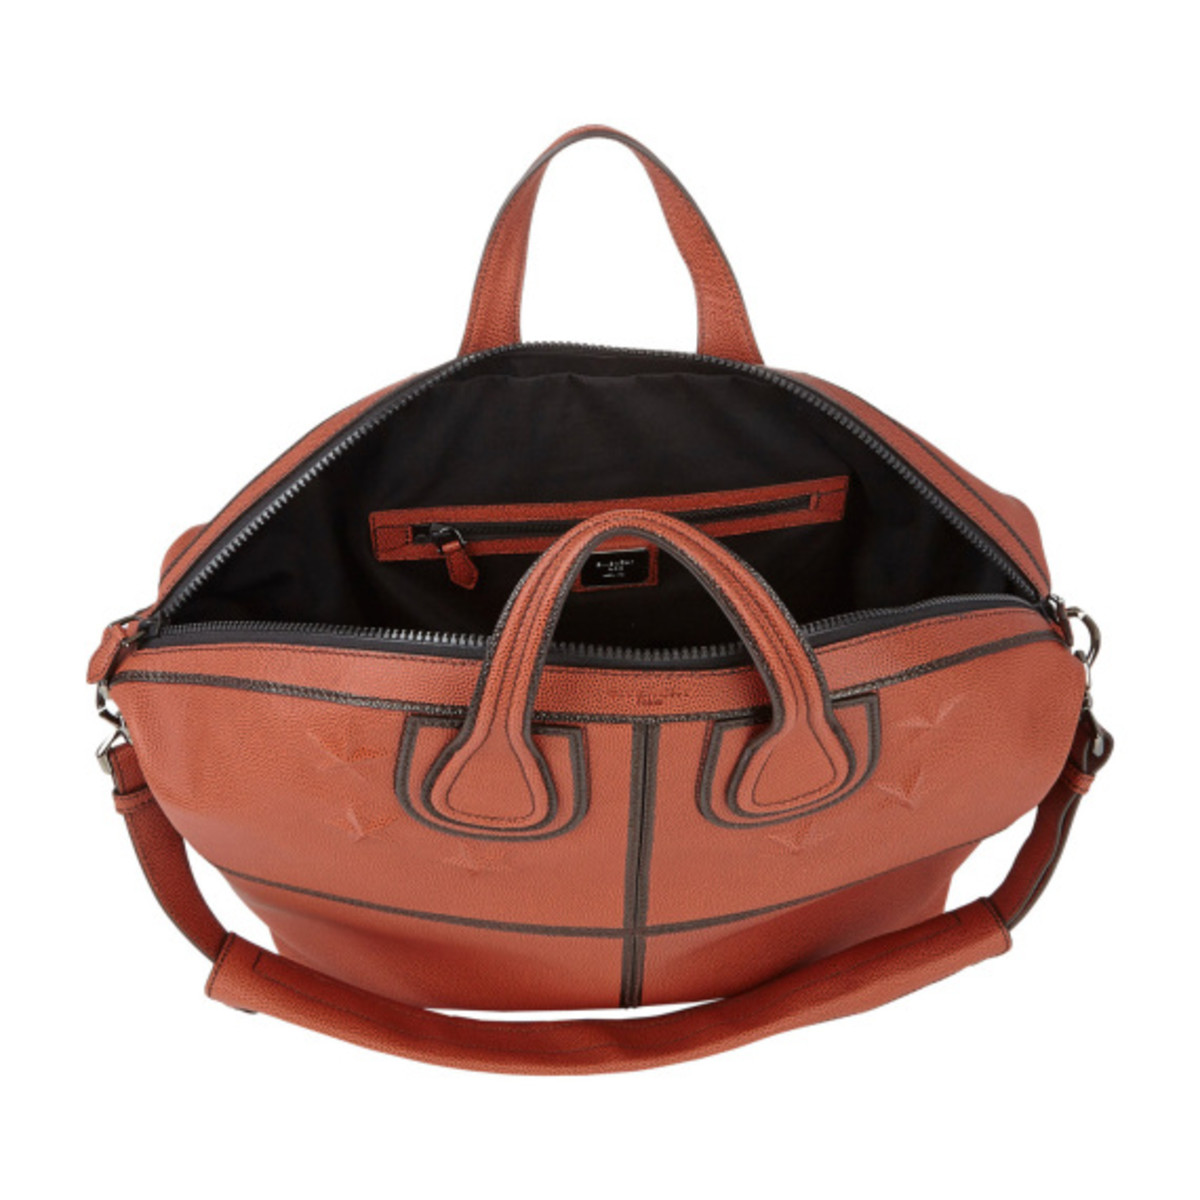 GIVENCHY - Star-Studded Nightingale Tote in Basketball Leather - 0